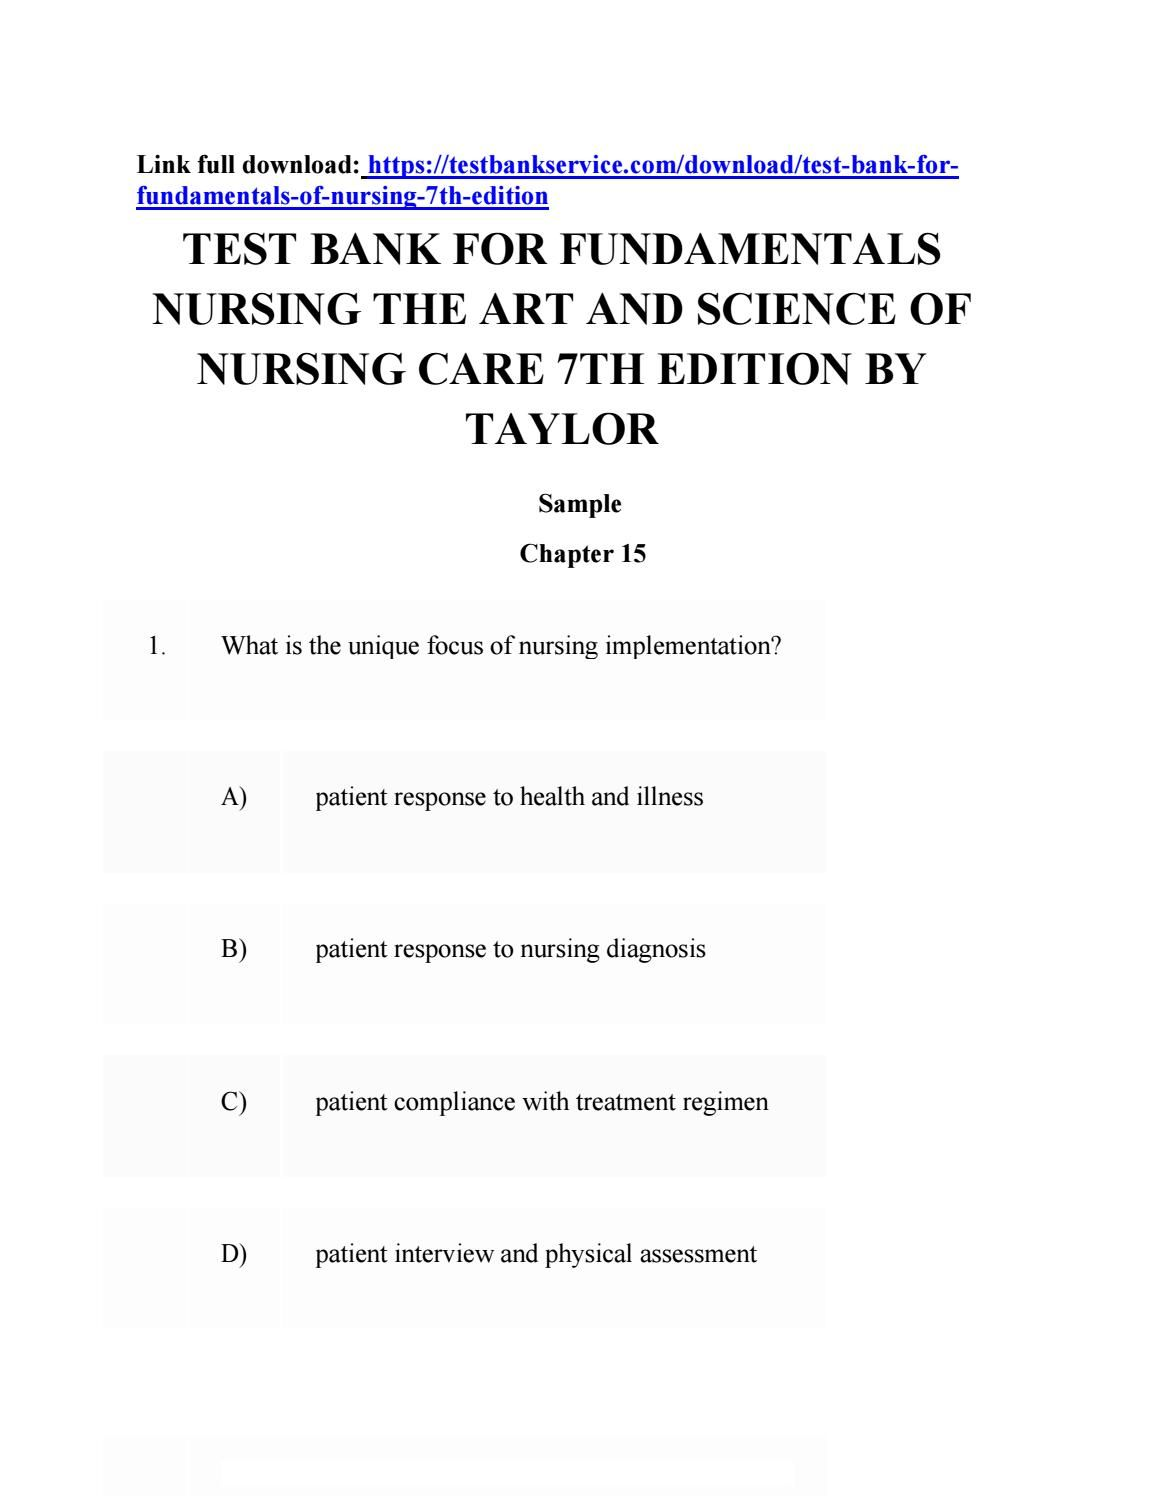 Download test bank for fundamentals nursing the art and science of ...